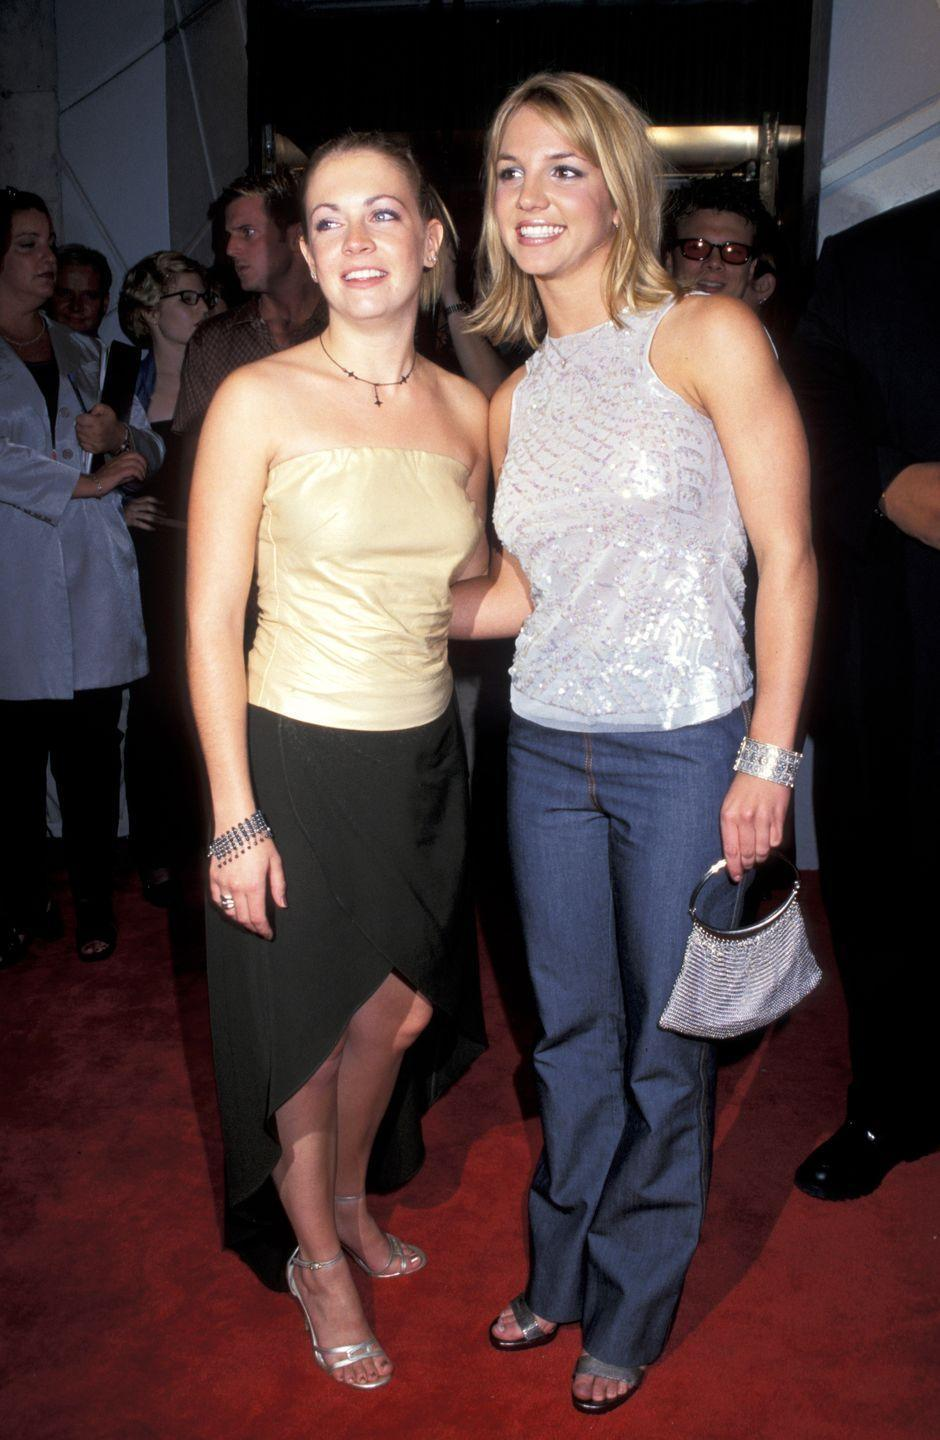 """<p>TBQH, it's like Britney and Melissa Joan Hart (remember, Brit and Melissa both starred in <a href=""""https://www.youtube.com/watch?v=Q4VK9_CfOLQ"""" rel=""""nofollow noopener"""" target=""""_blank"""" data-ylk=""""slk:the """"(You Drive Me) Crazy"""" music video"""" class=""""link rapid-noclick-resp"""">the """"(You Drive Me) Crazy"""" music video</a> alongside Adrian Grenier) had a competition to see who could look more '90s. They both win!</p>"""